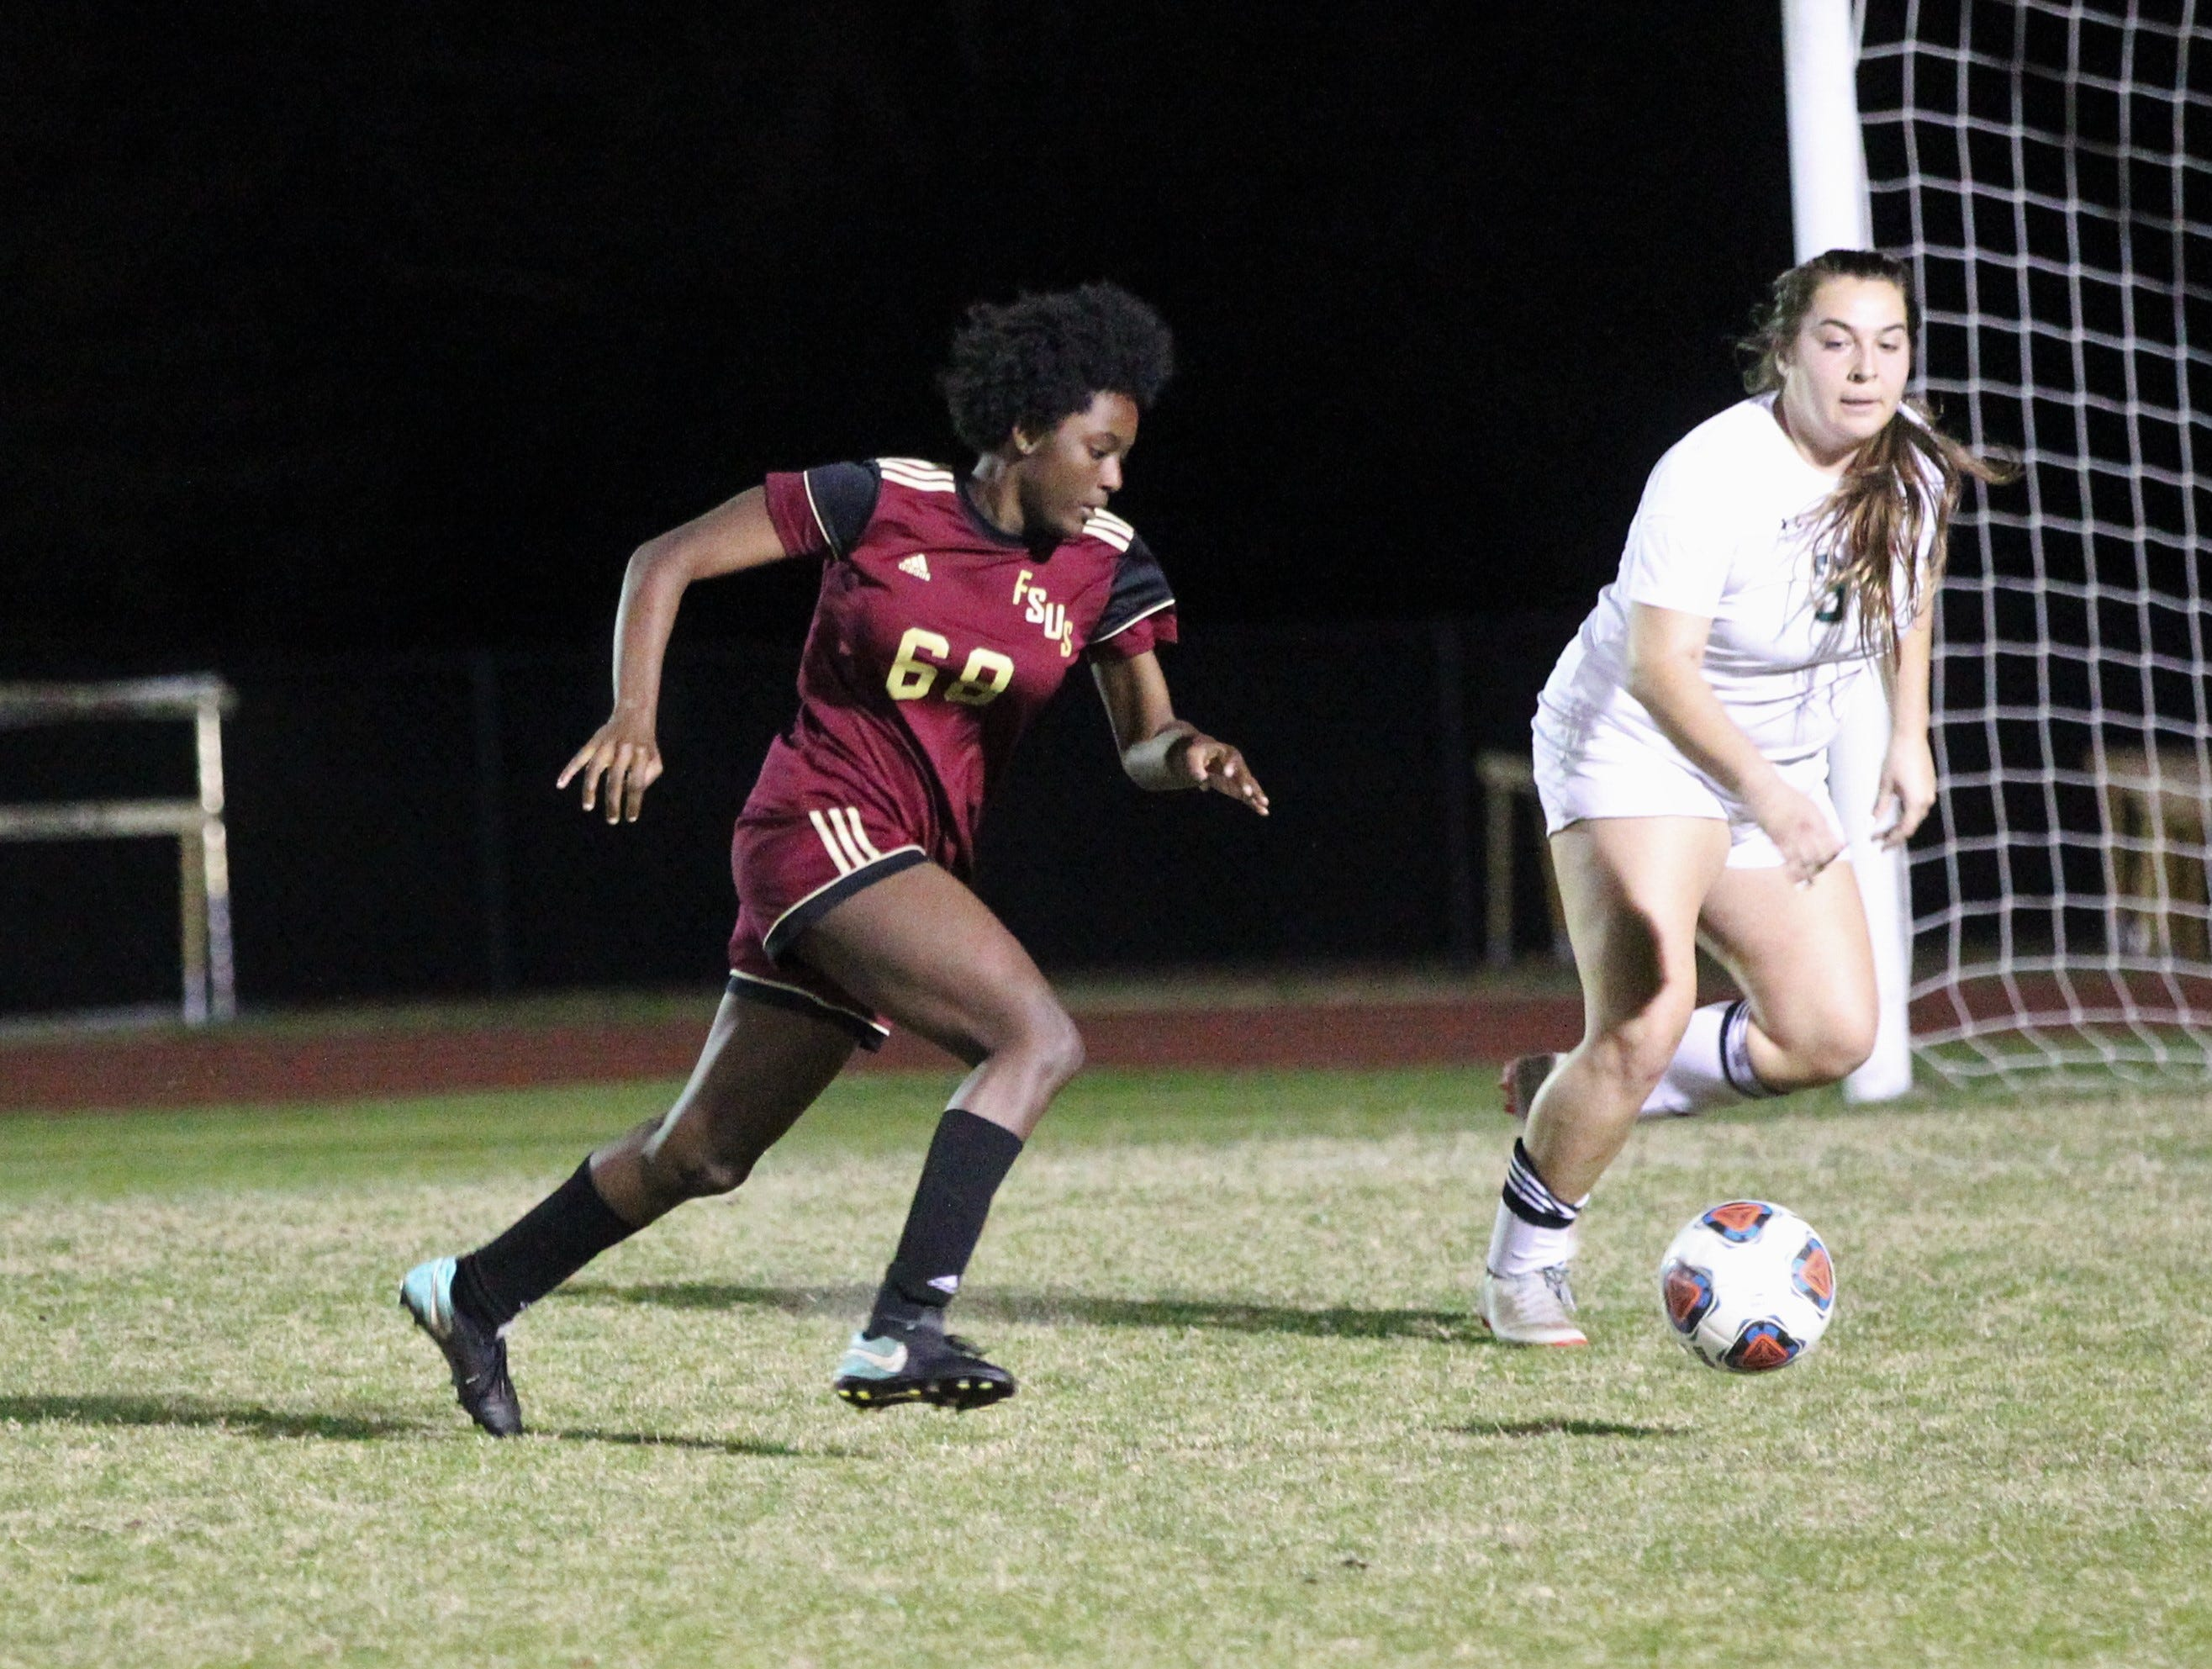 Florida High's Jordyn Still dribbles in the box looking for a shot as South Walton edged the Seminoles 5-4 in a penalty-kick shootout during a Region 1-2A semifinal on Feb. 8, 2019.